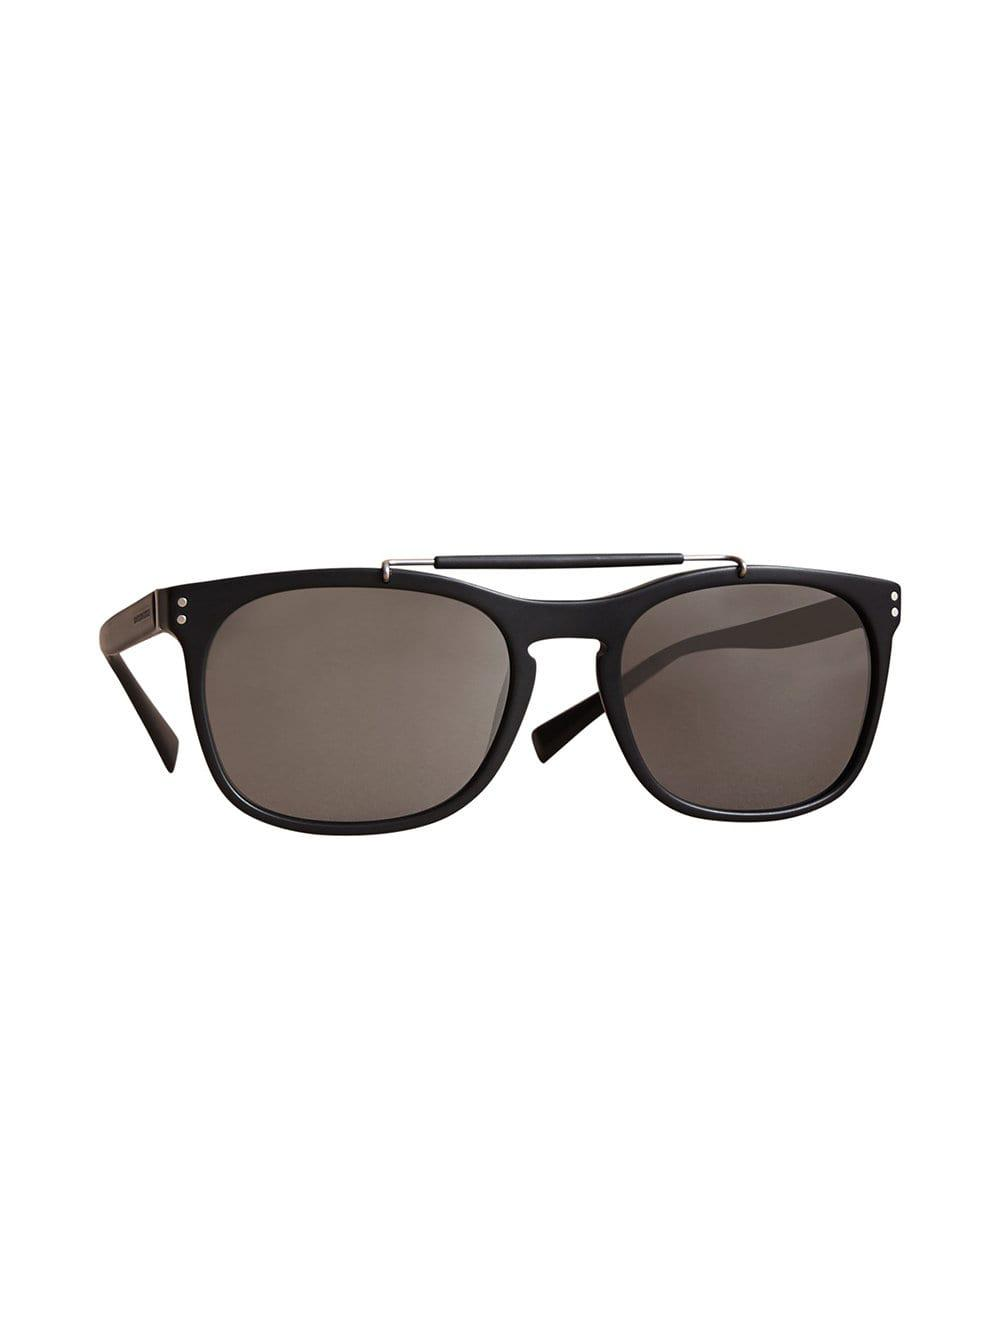 Burberry Top Bar Square Frame Sunglasses in Black